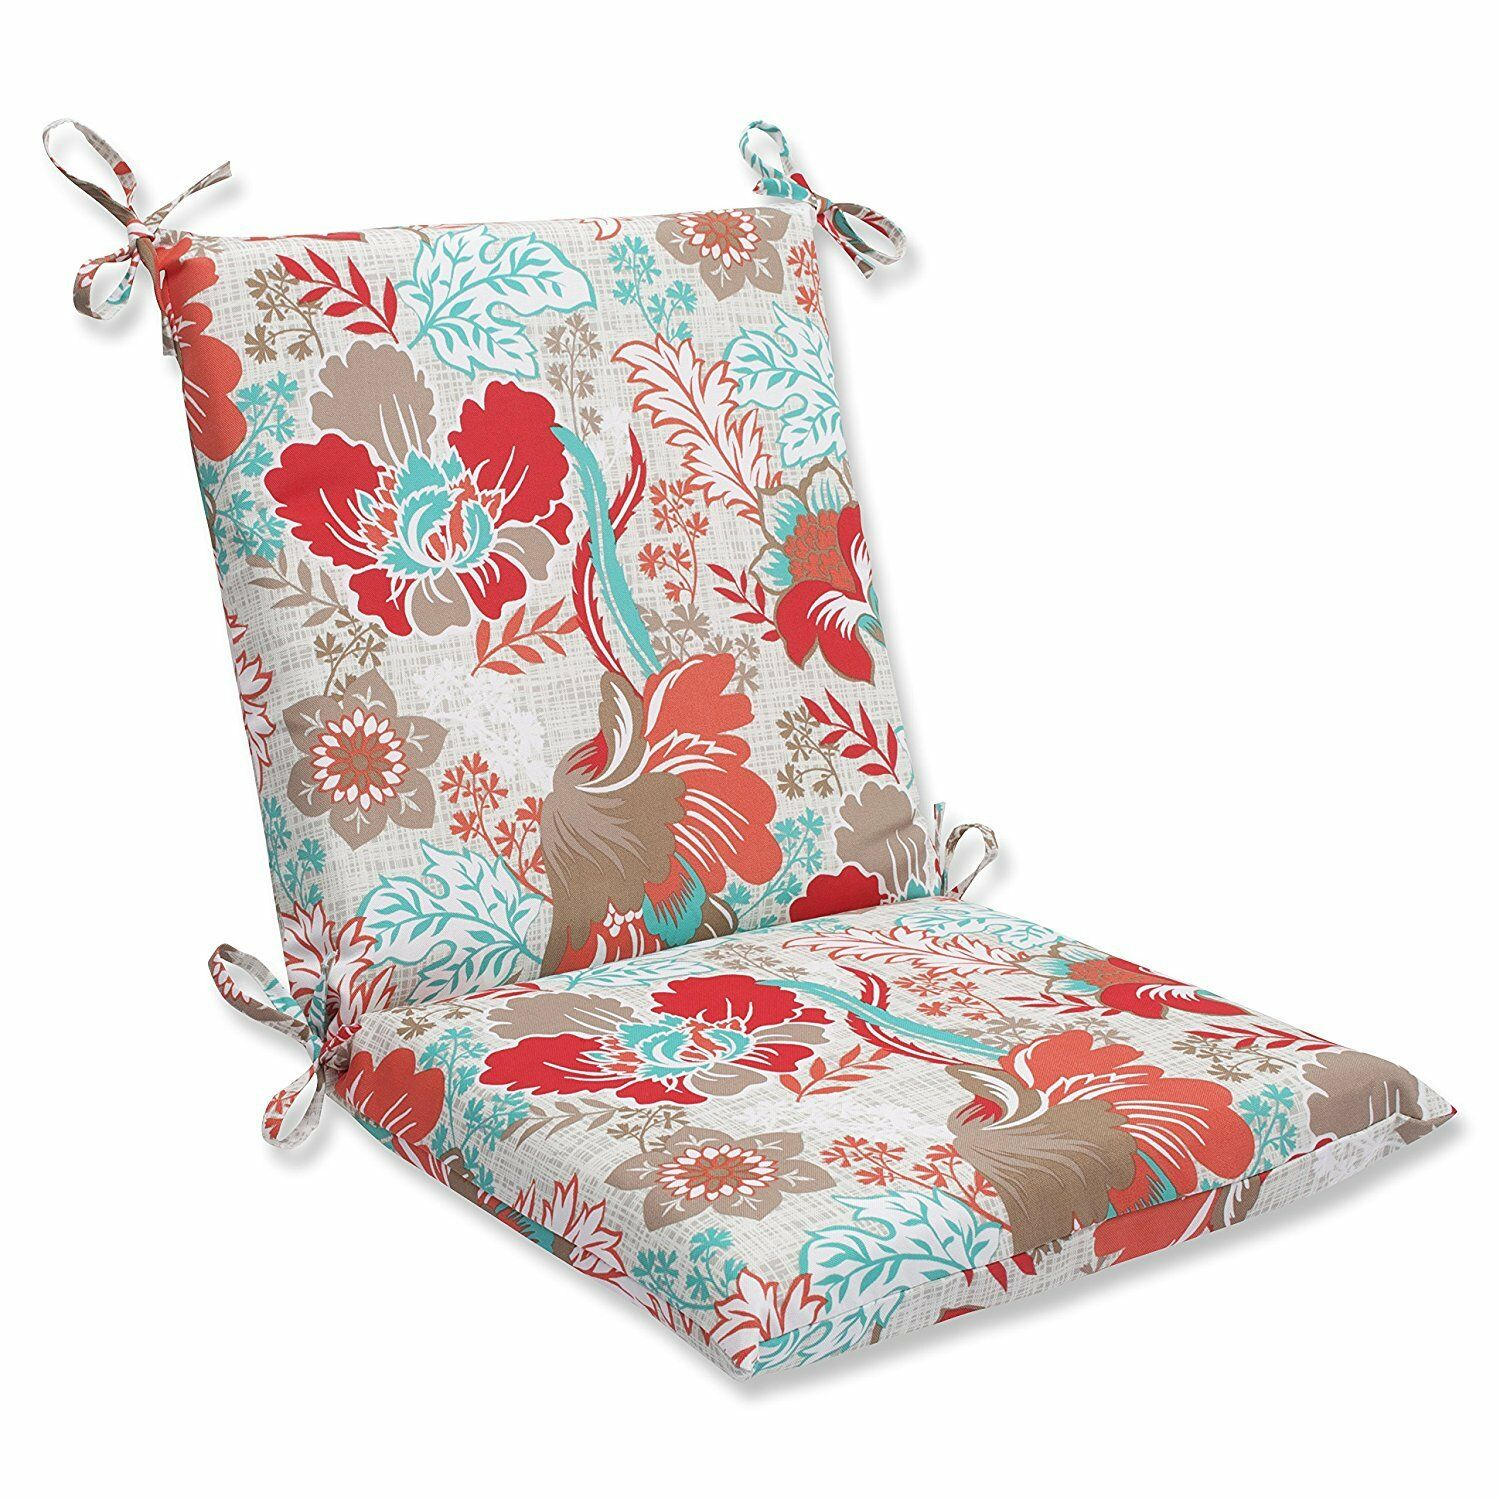 PILLOW PERFECT OUTDOOR SUZANNE SPRING CHAIR CUSHION PAD COVE